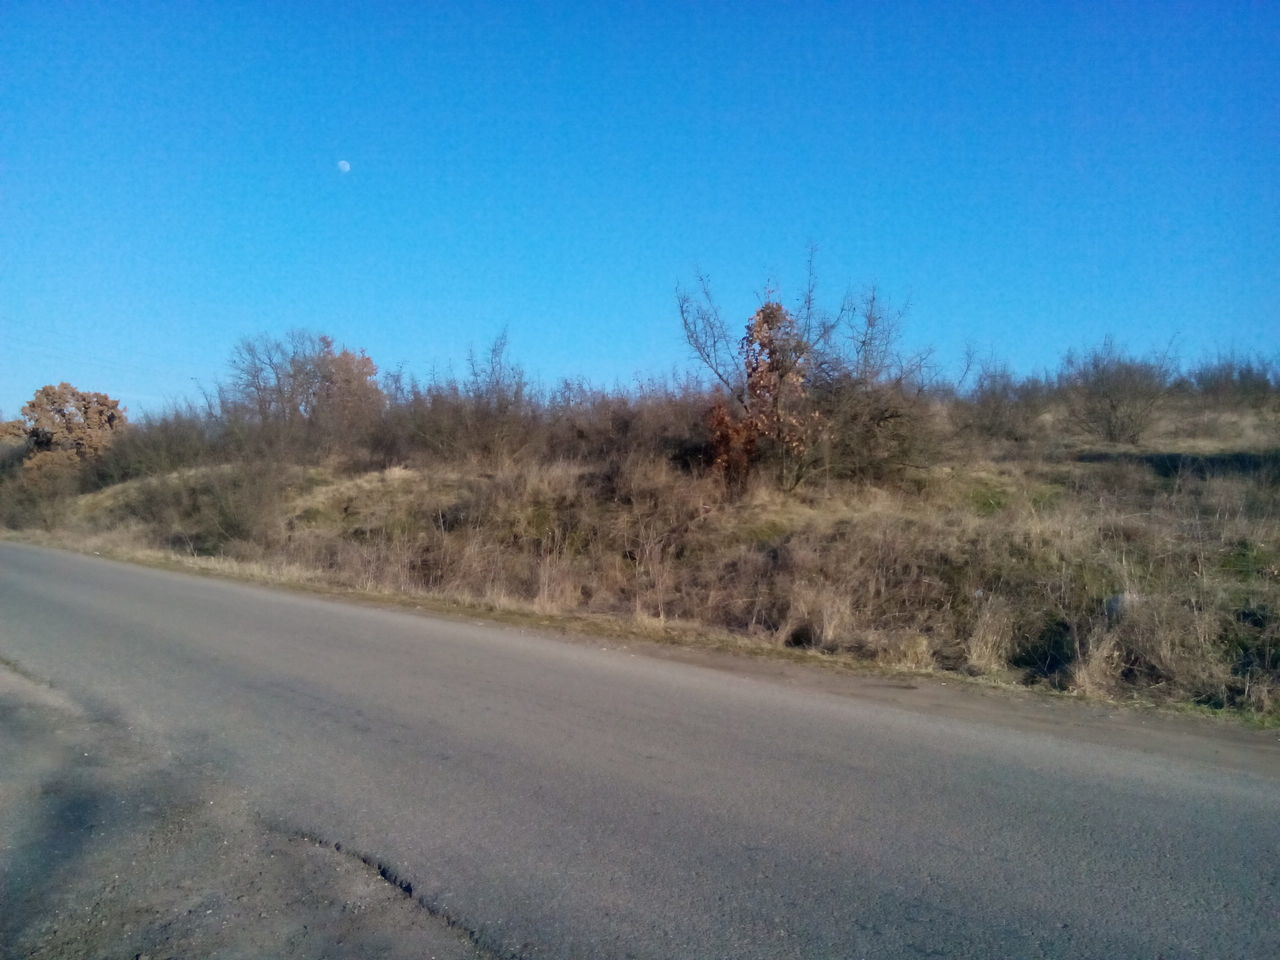 road, blue, the way forward, clear sky, nature, no people, transportation, landscape, day, outdoors, sky, grass, tree